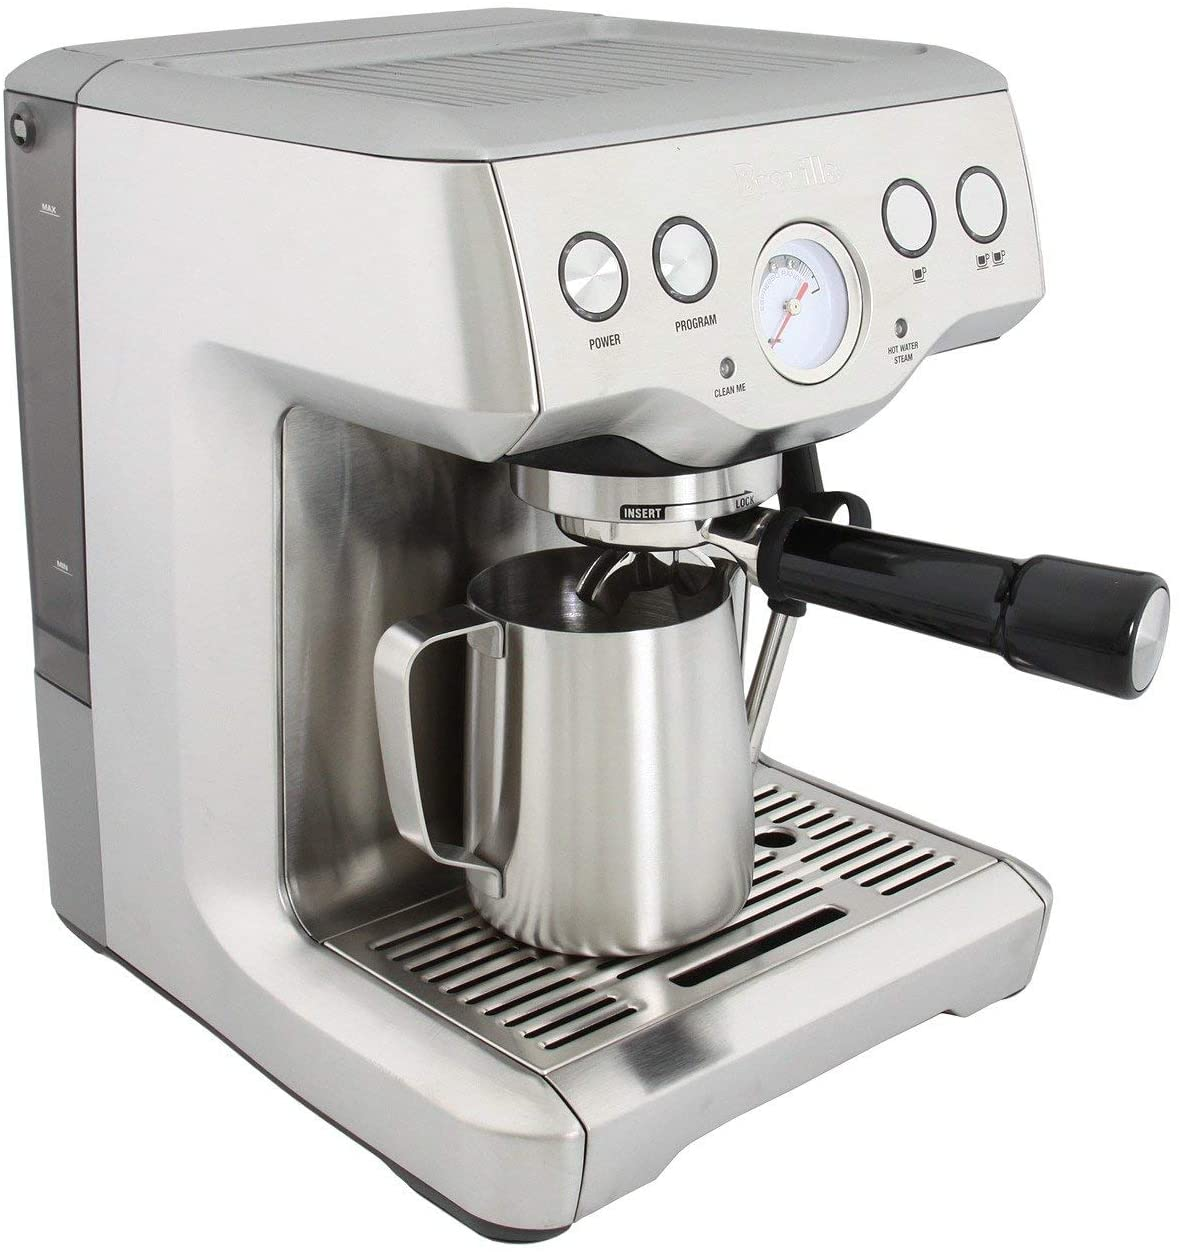 How Much Is An Espresso Machine